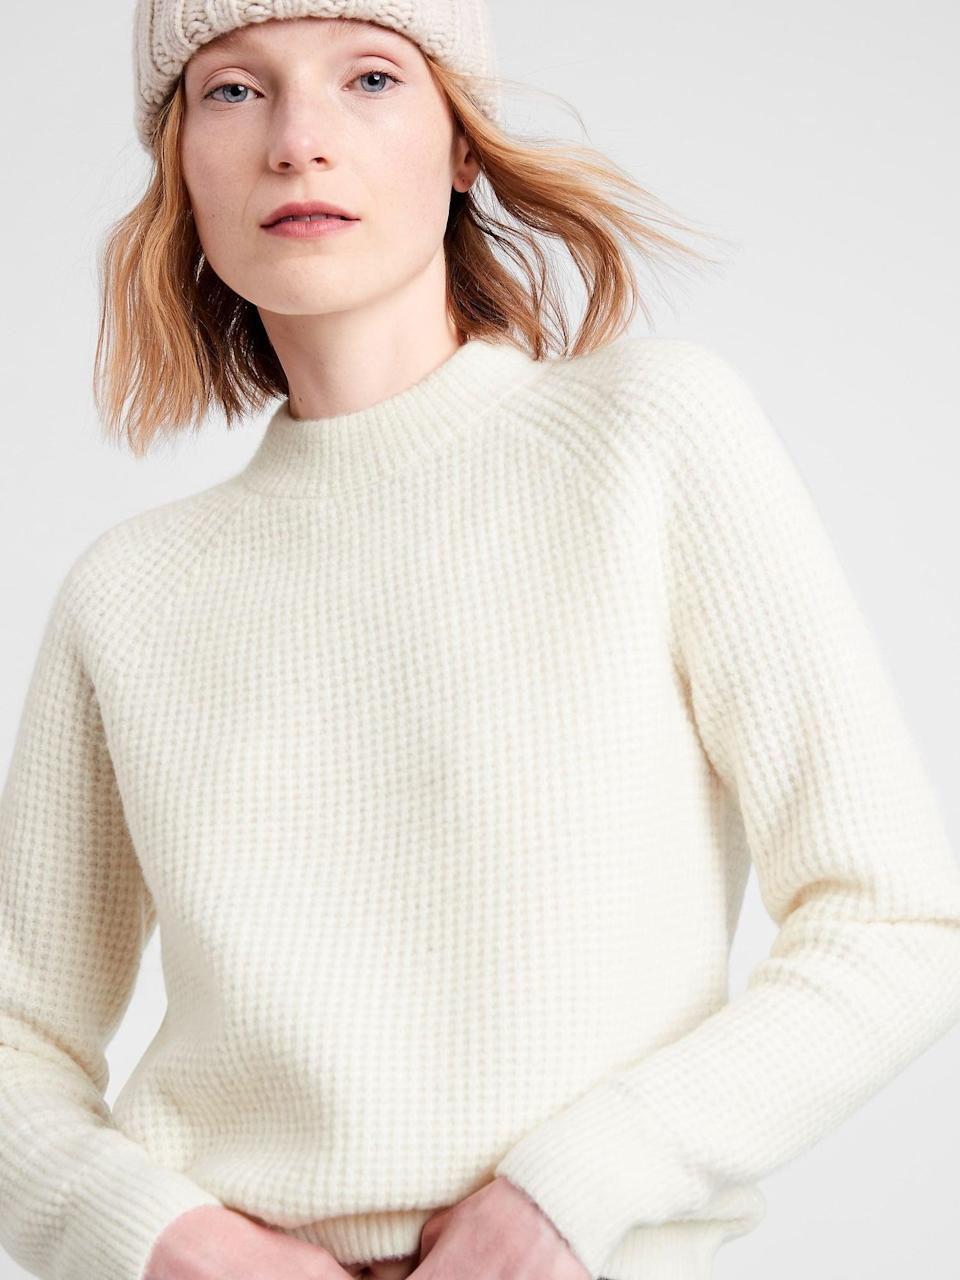 <p>This <span>Banana Republic Aire Waffle-Knit Sweater</span> ($78, originally $99) is the exact version I own, and it's currently my favorite winter staple. It looks great with jeans as well as a skirt and tights. I even recently wore it with knit joggers.</p>